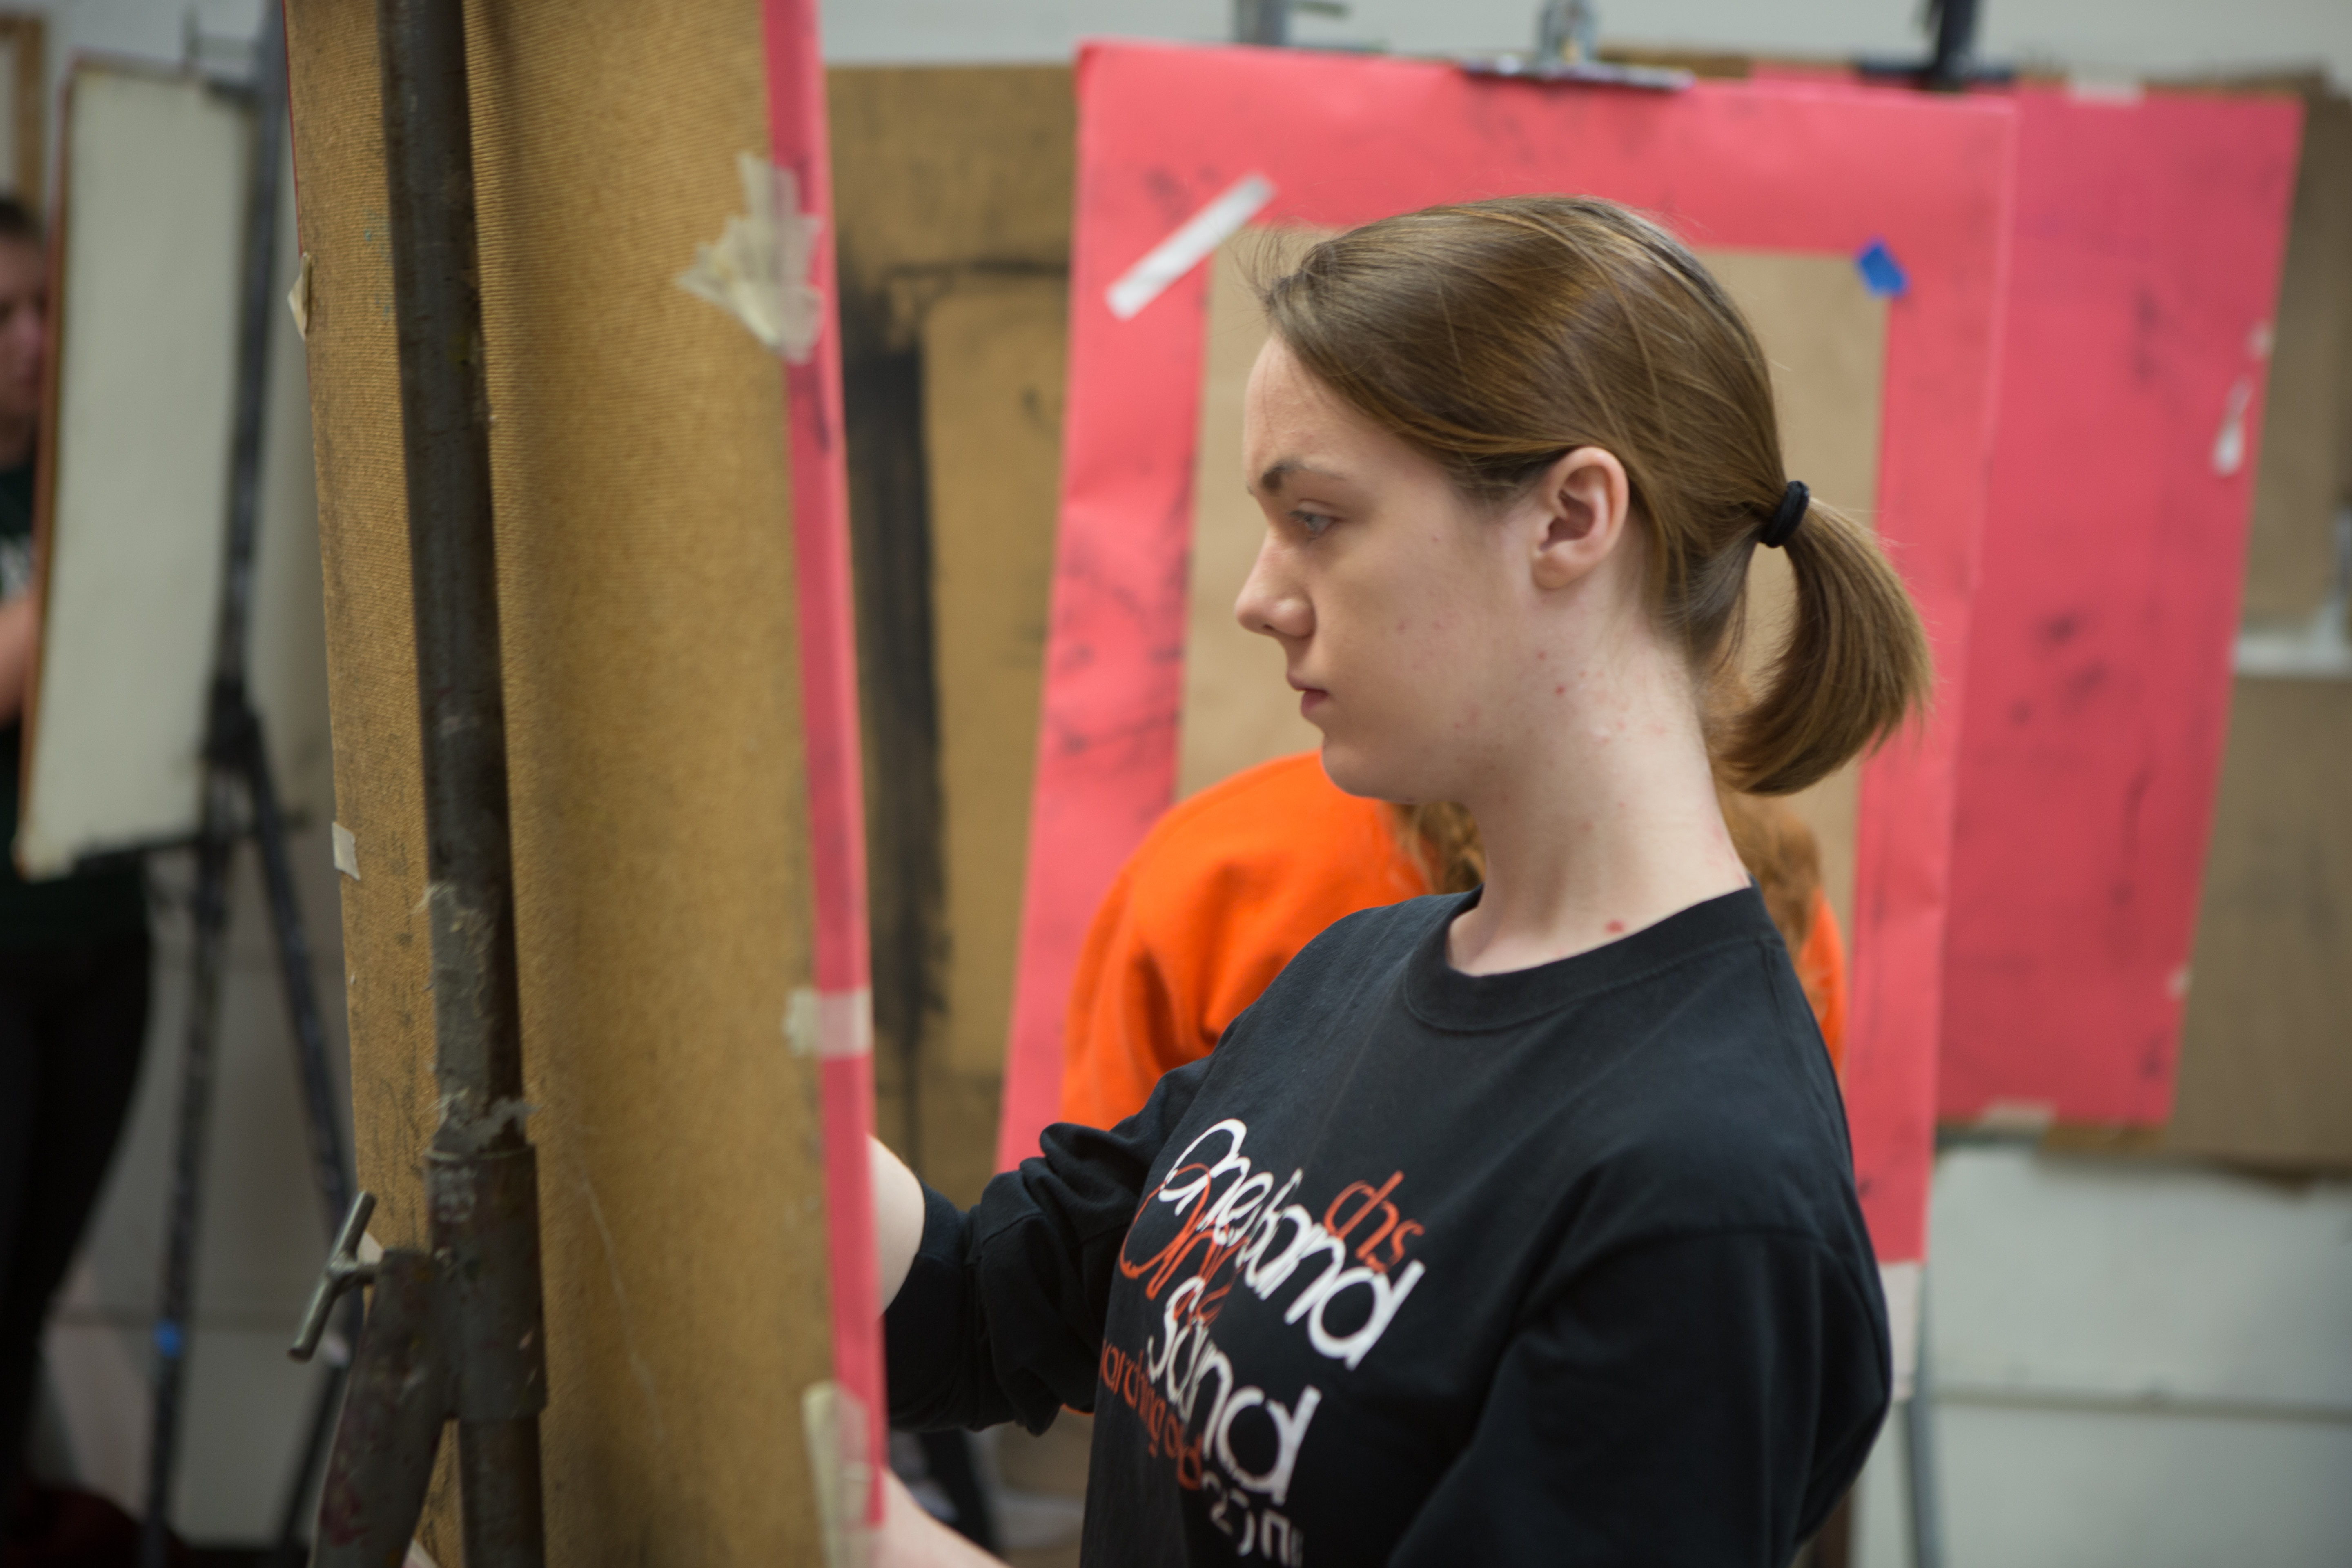 A student works in the Wilson Art Center.